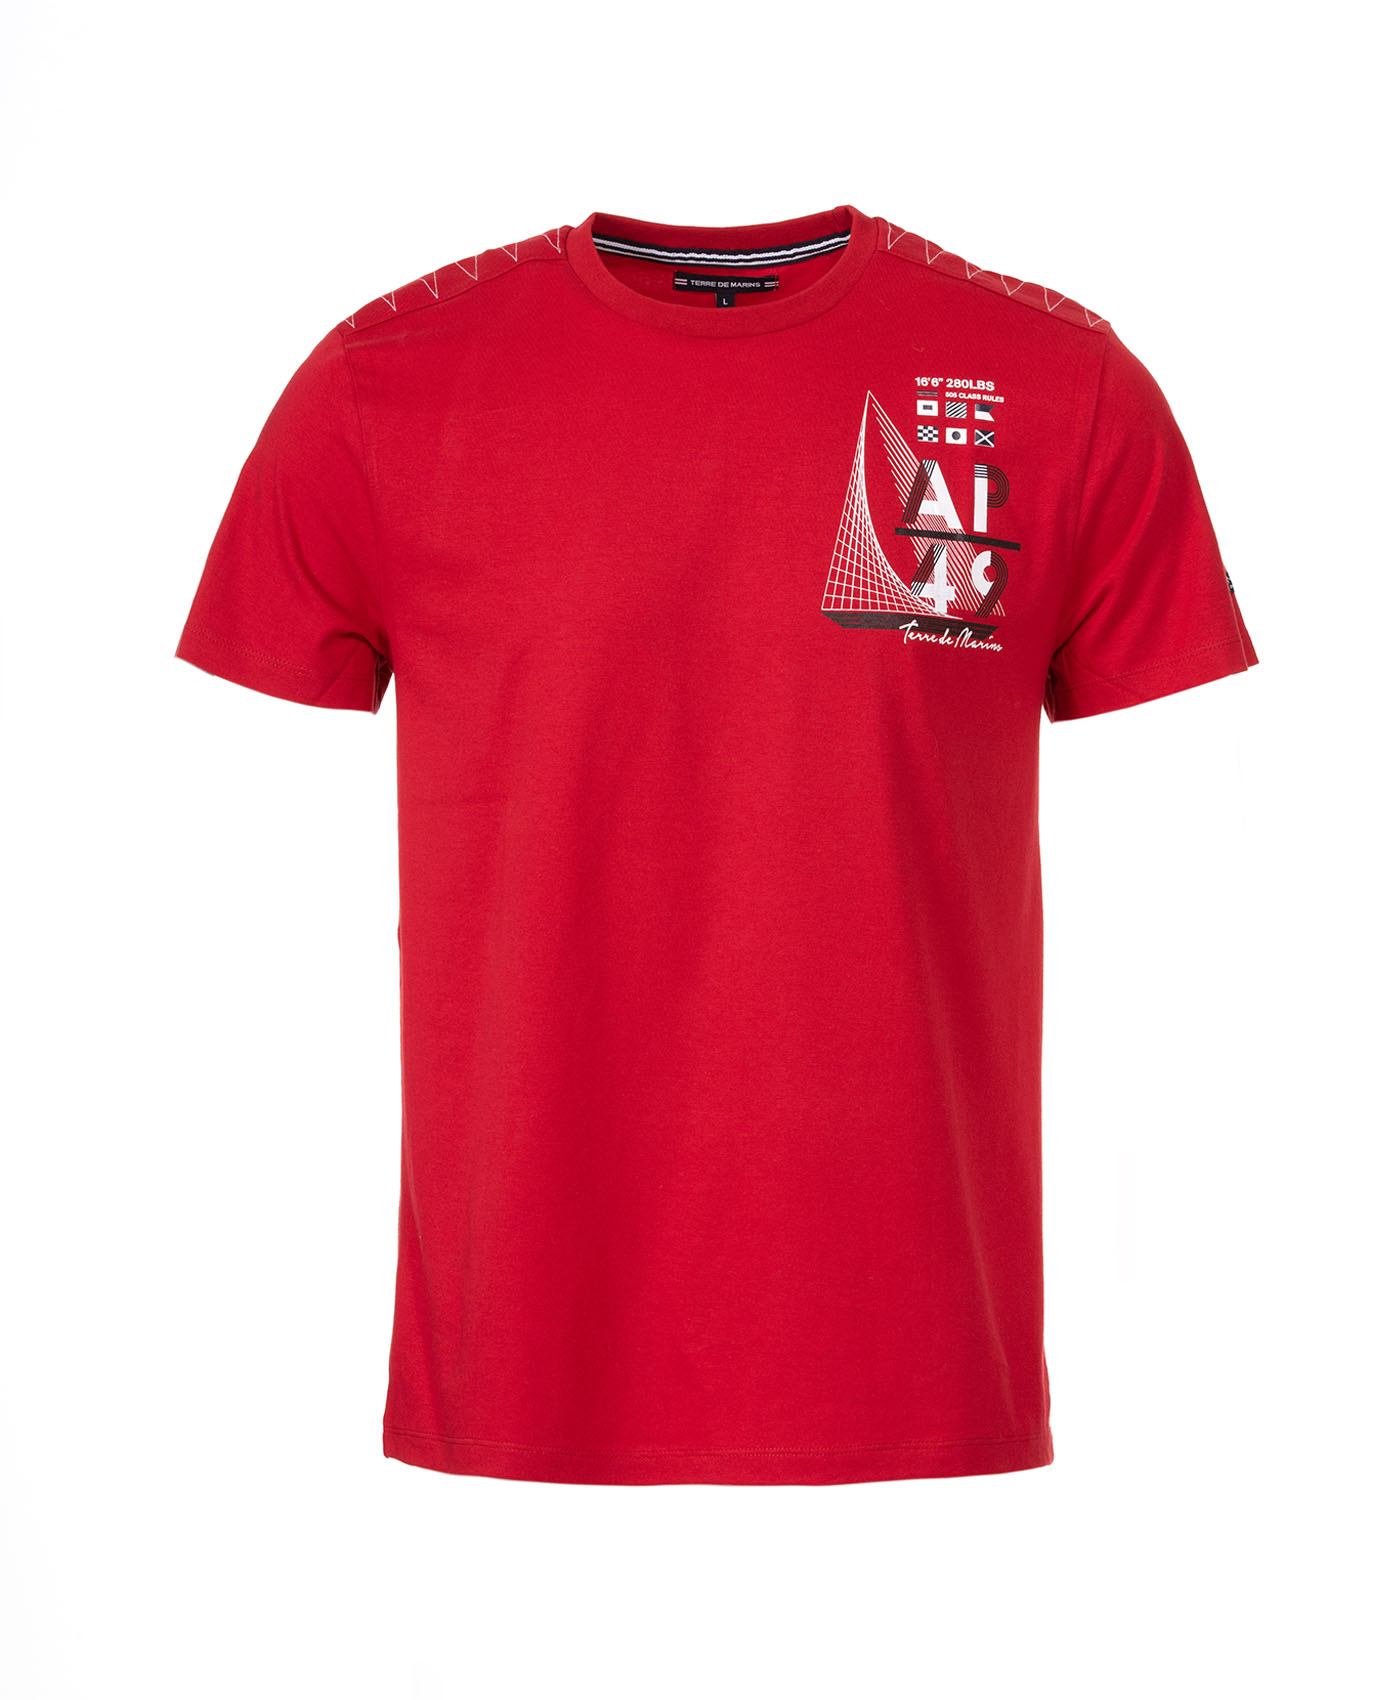 Tee shirt manches courtes homme - Mode marine Sélections